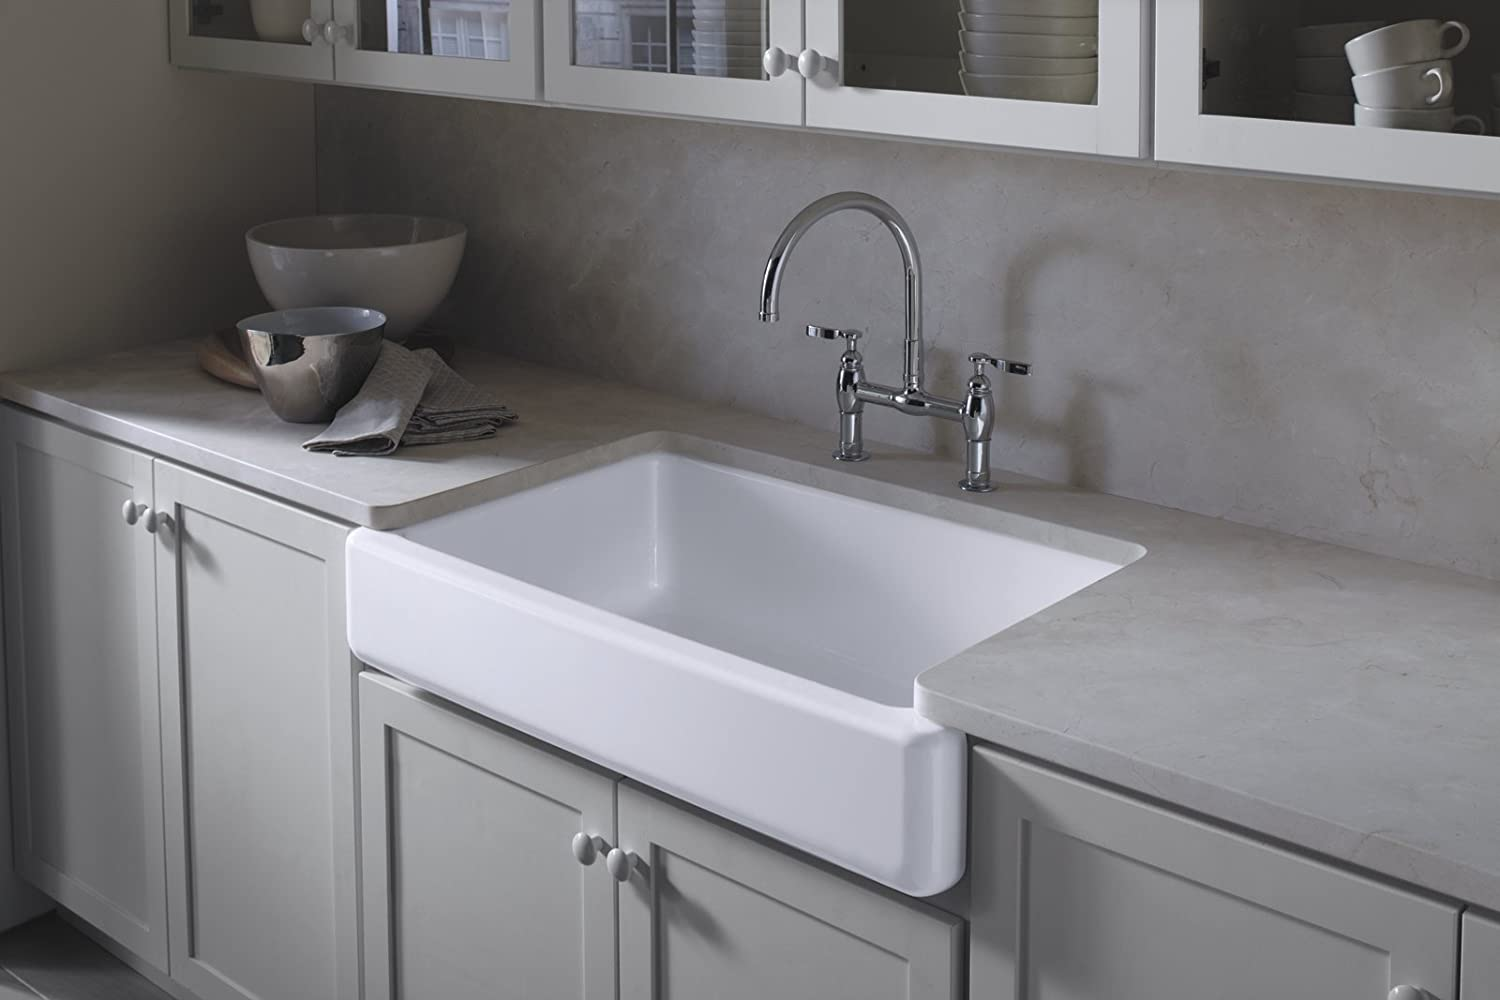 KOHLER K-6488-0 Whitehaven Self-Trimming Apron Front Single Basin ...